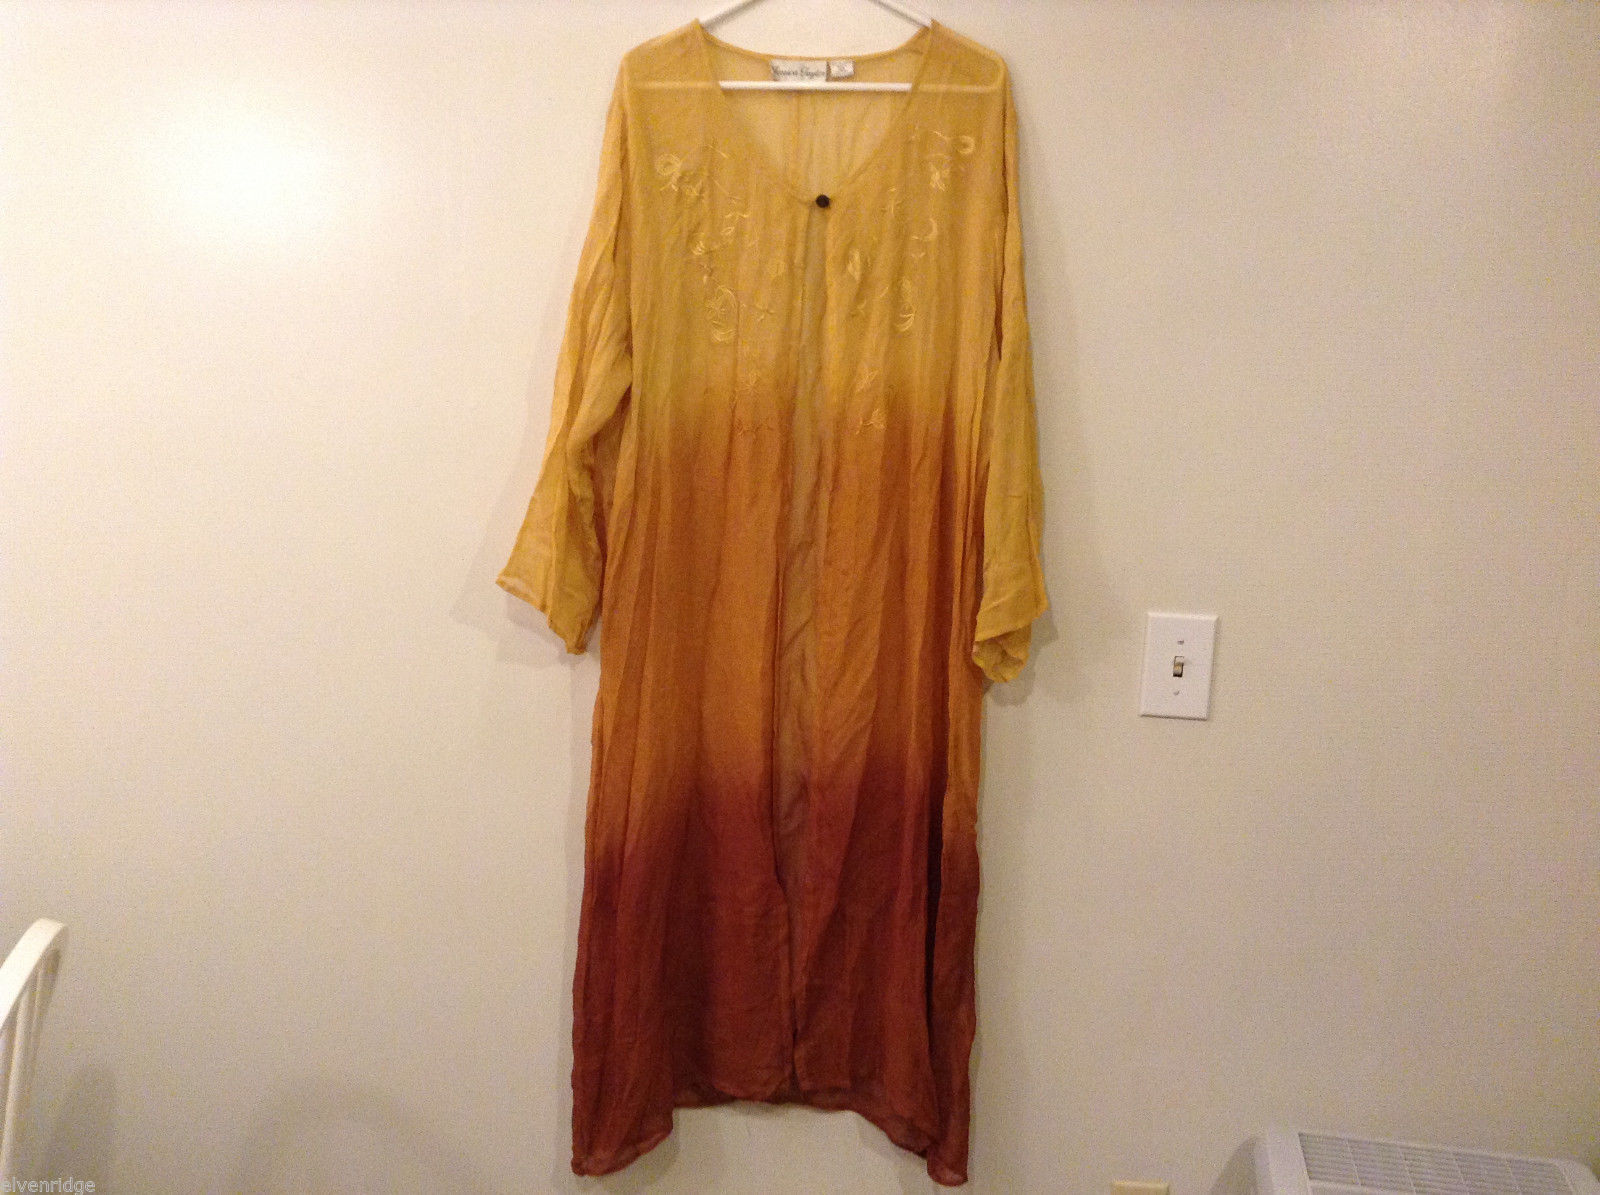 Jessica Taylor 3 Tone Color V-neck Long Cover Up Blouse 100% polyester, size 2X